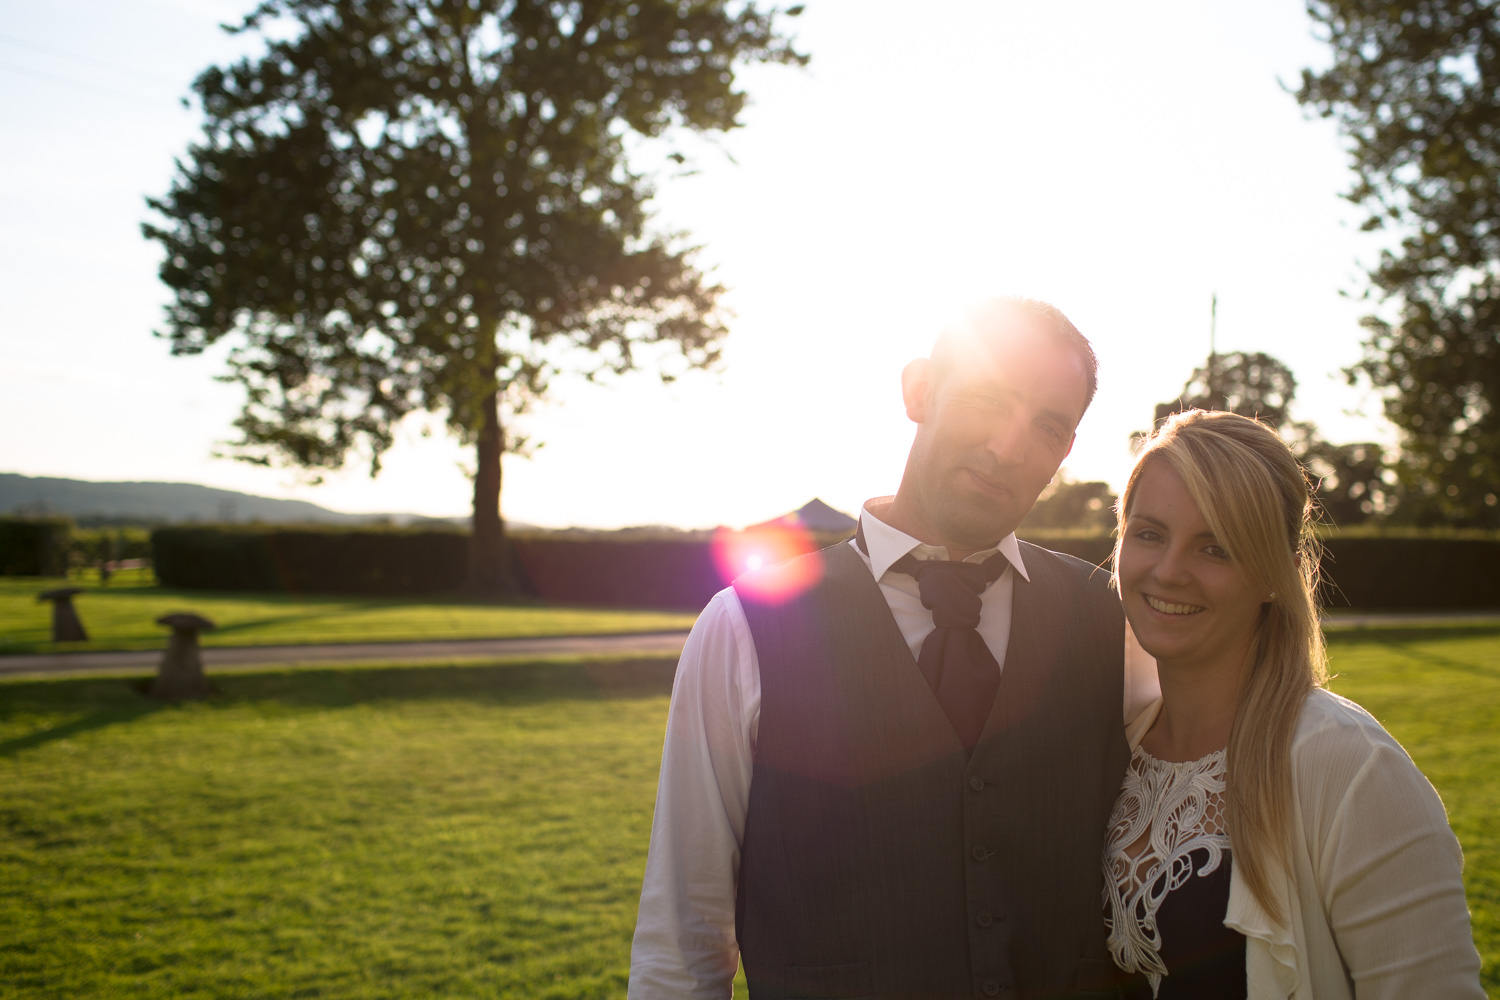 Mark_Barnes_Bristol-wedding-photography-aldwick-court-farm-and-vineyard-wedding-Photography-54.jpg